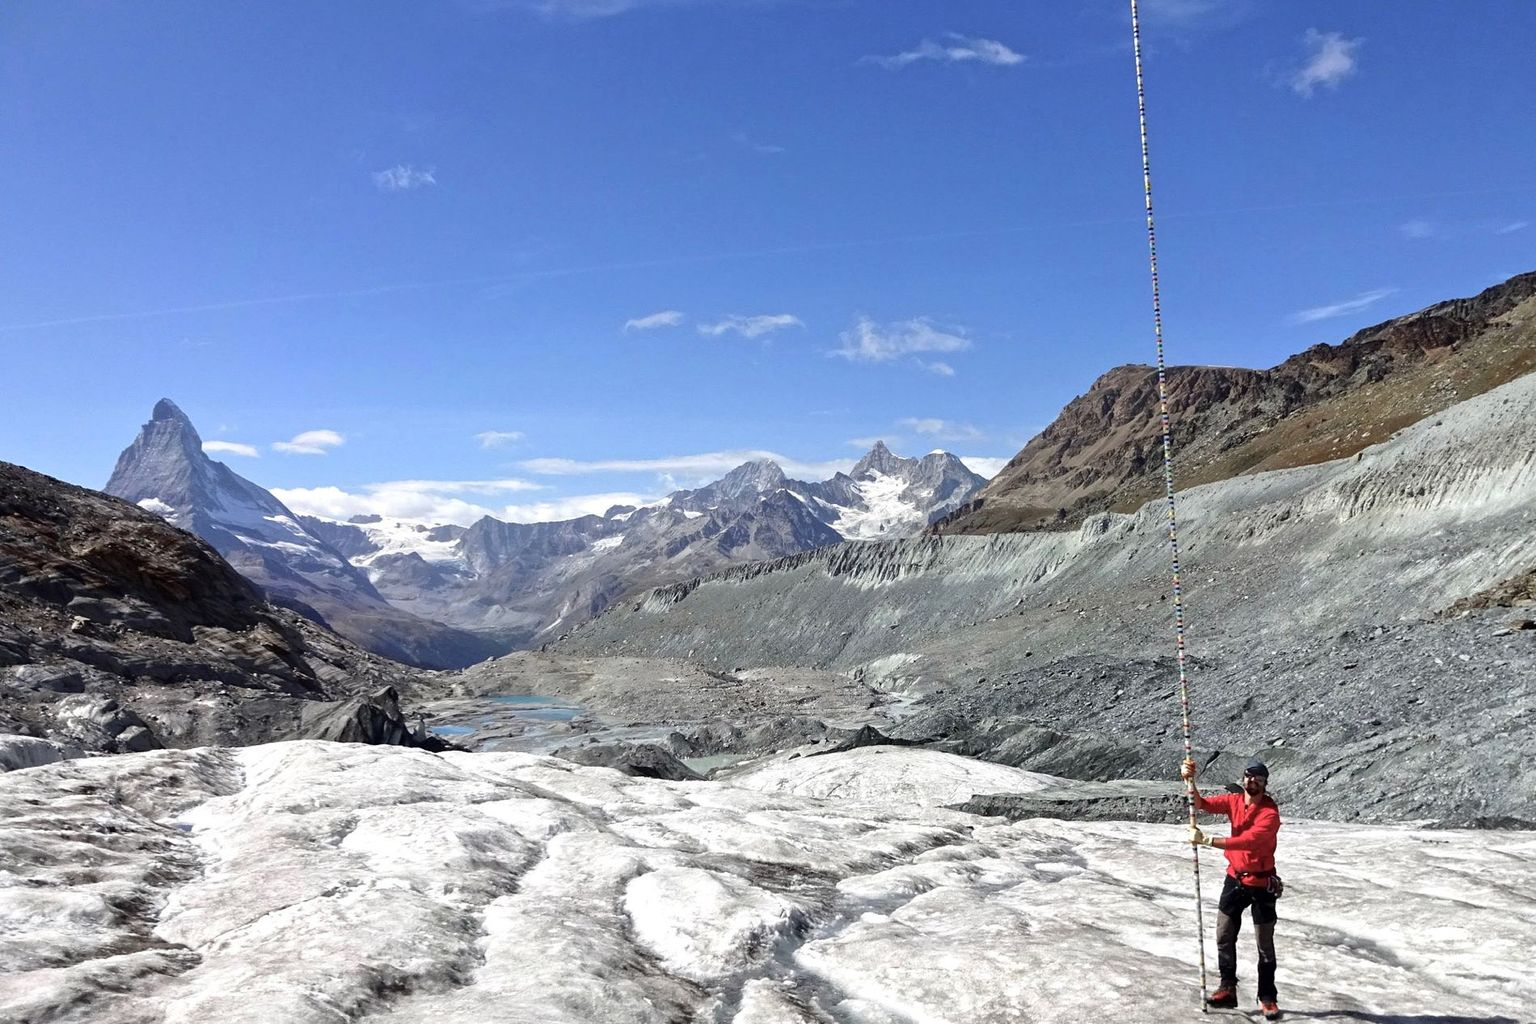 During the summer of 2019, 8 metres of ice melted at the snout of the Findelen glacier – an amount strikingly illustrated by a pole used for mass-balance measurements.